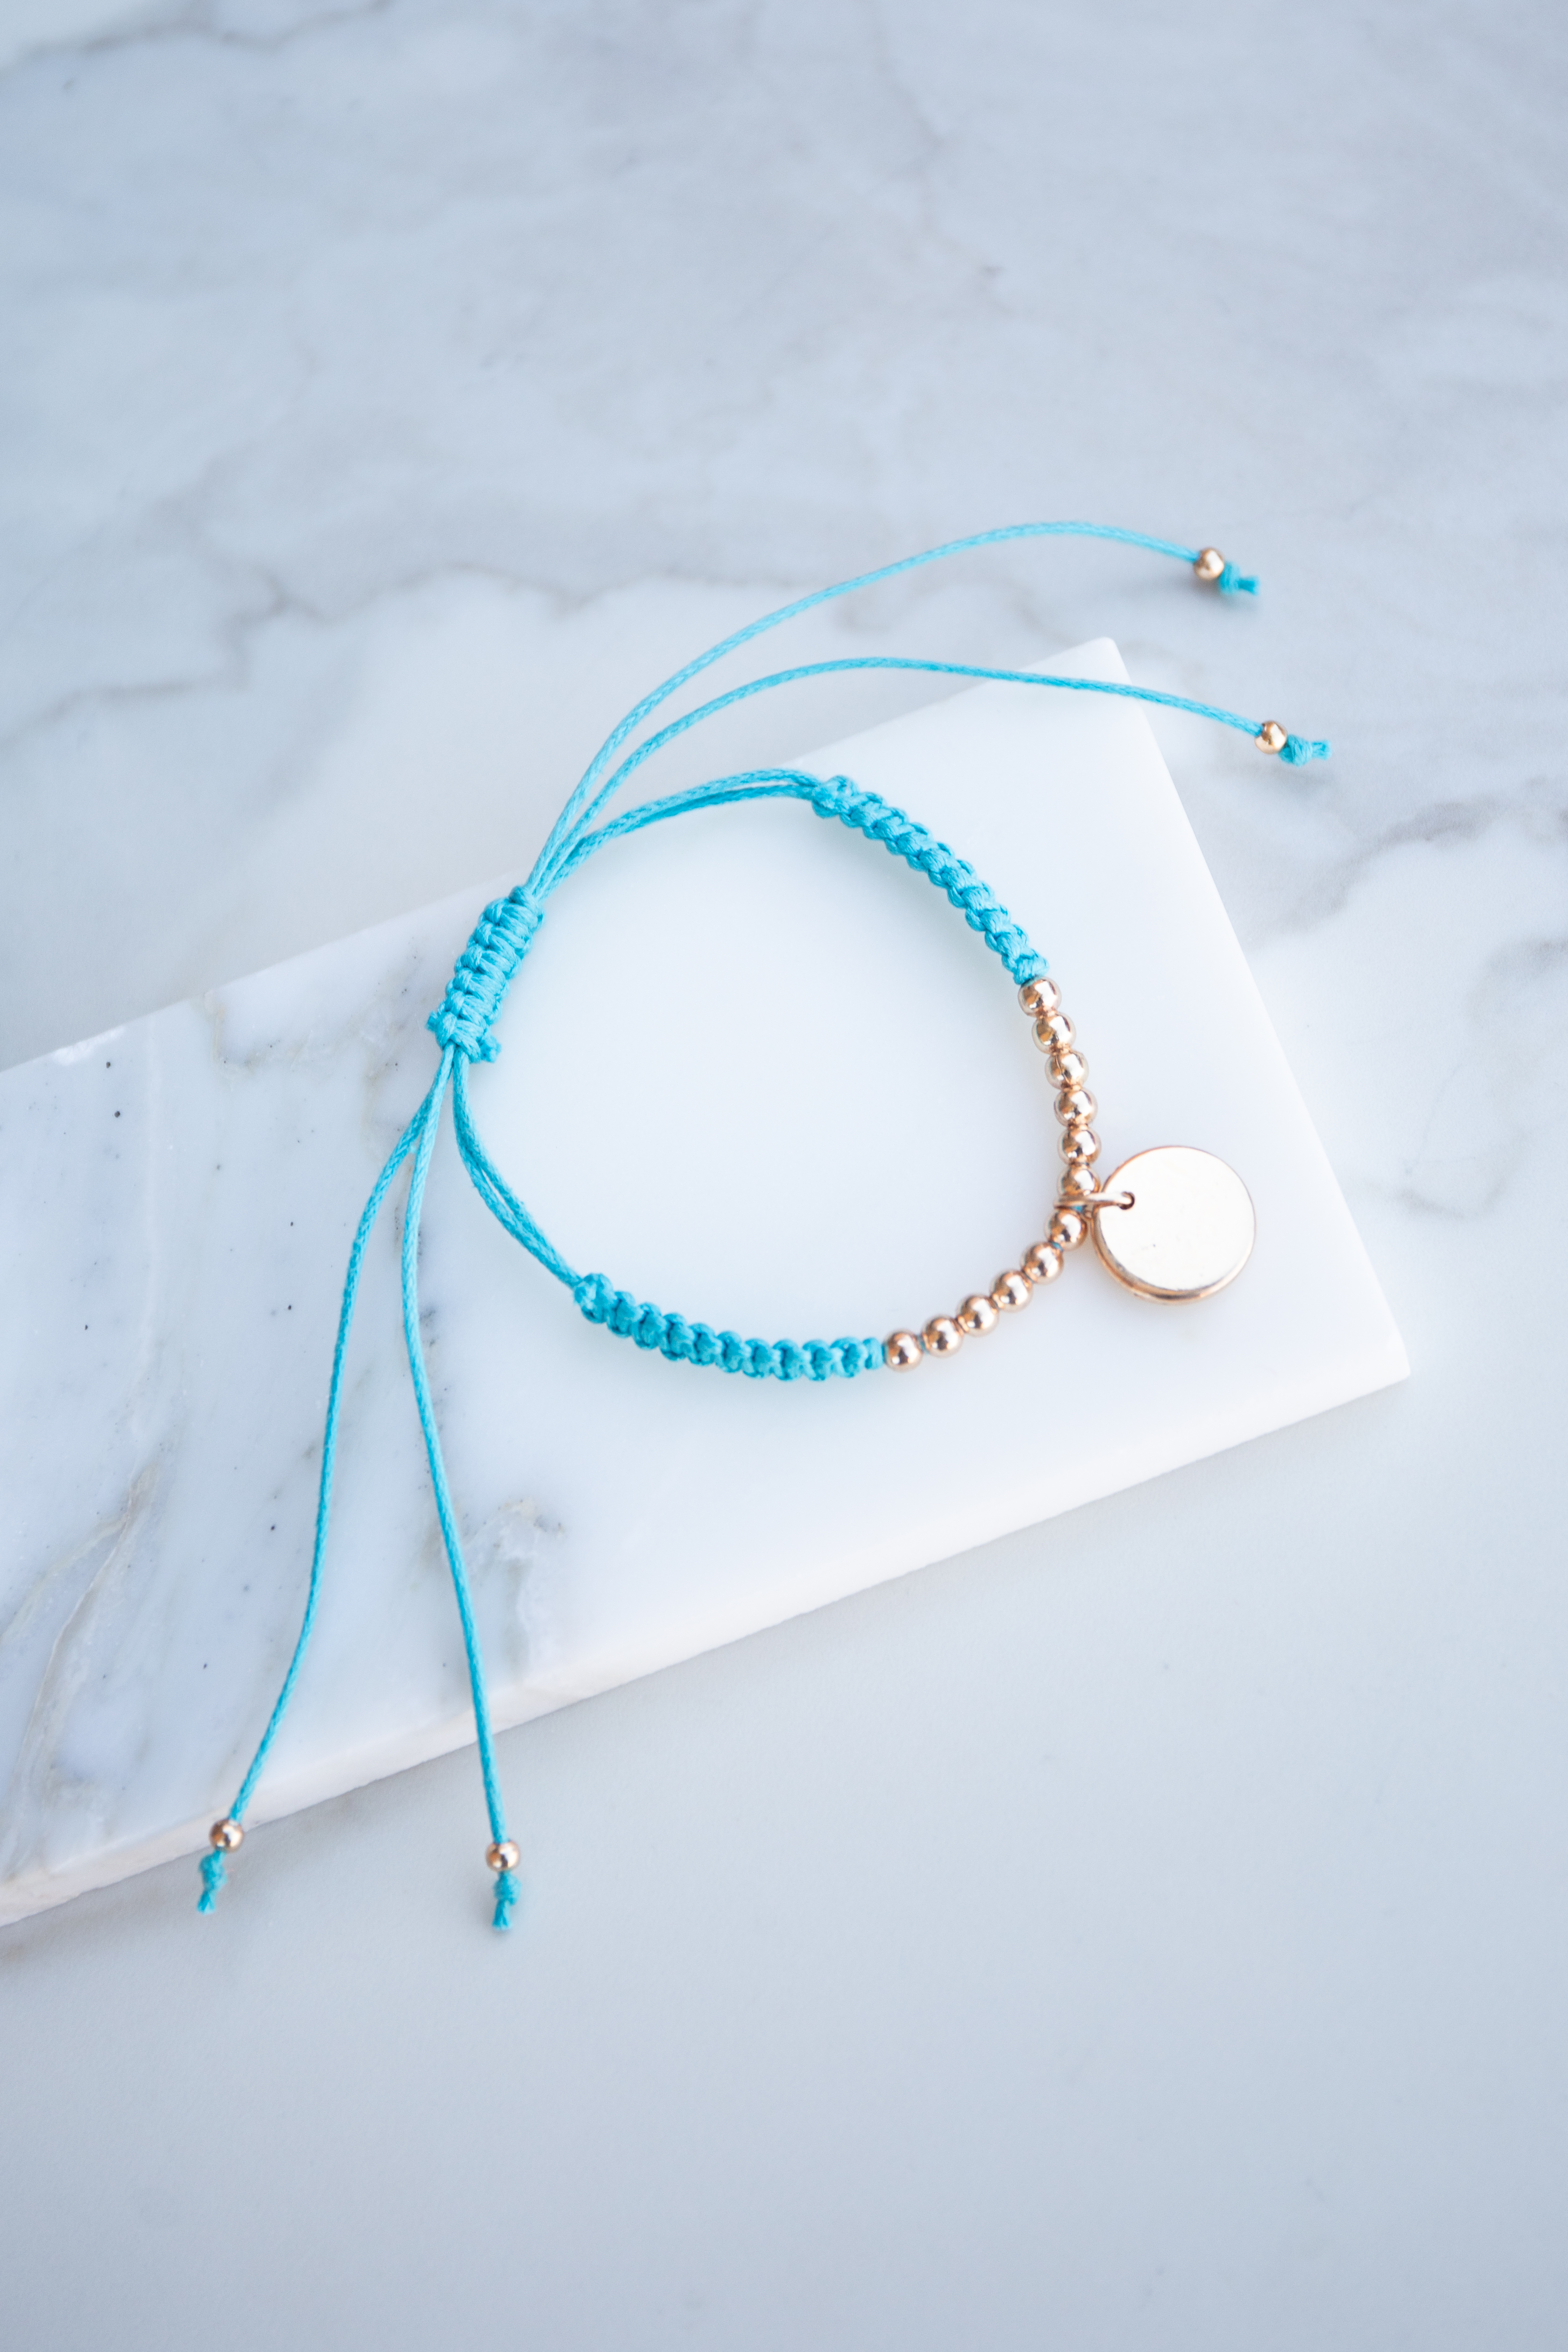 Cerulean Adjustable Bracelet with Gold Bead Details